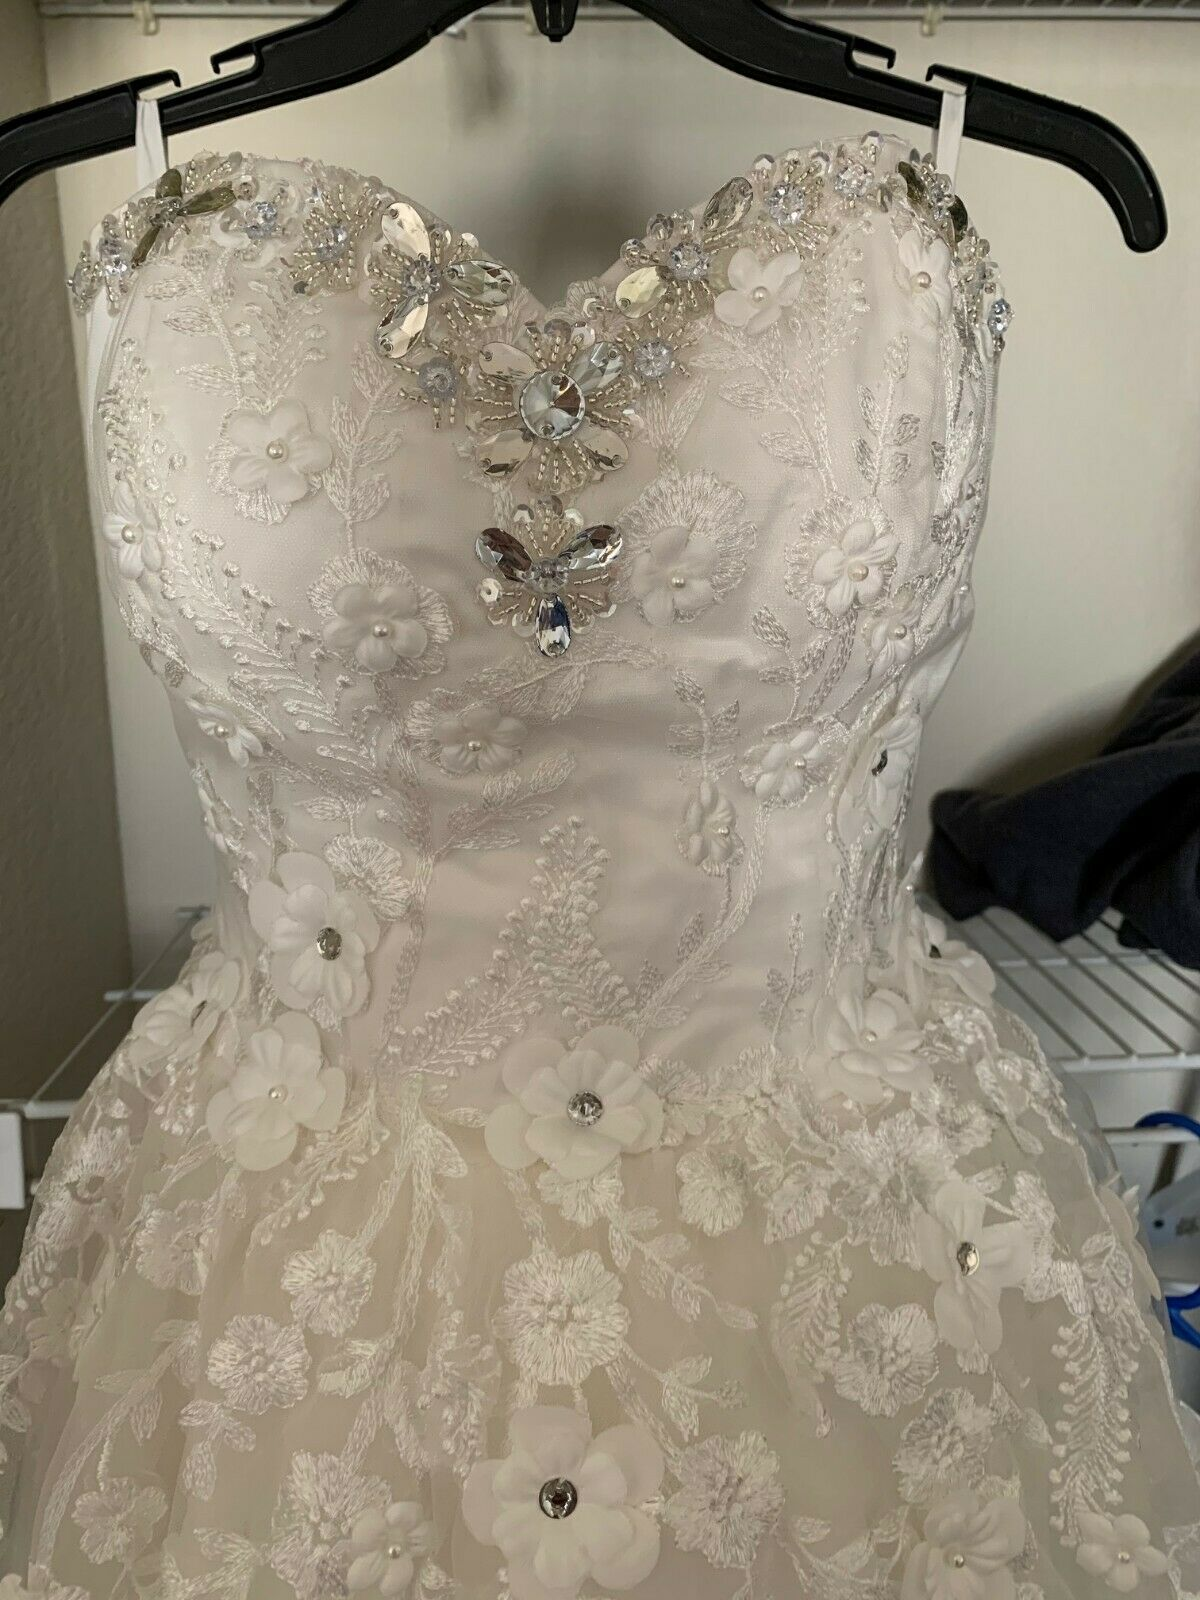 Ball Gown Sweetheart Neck Sequins Wedding Dress with Free Veil, Ivory